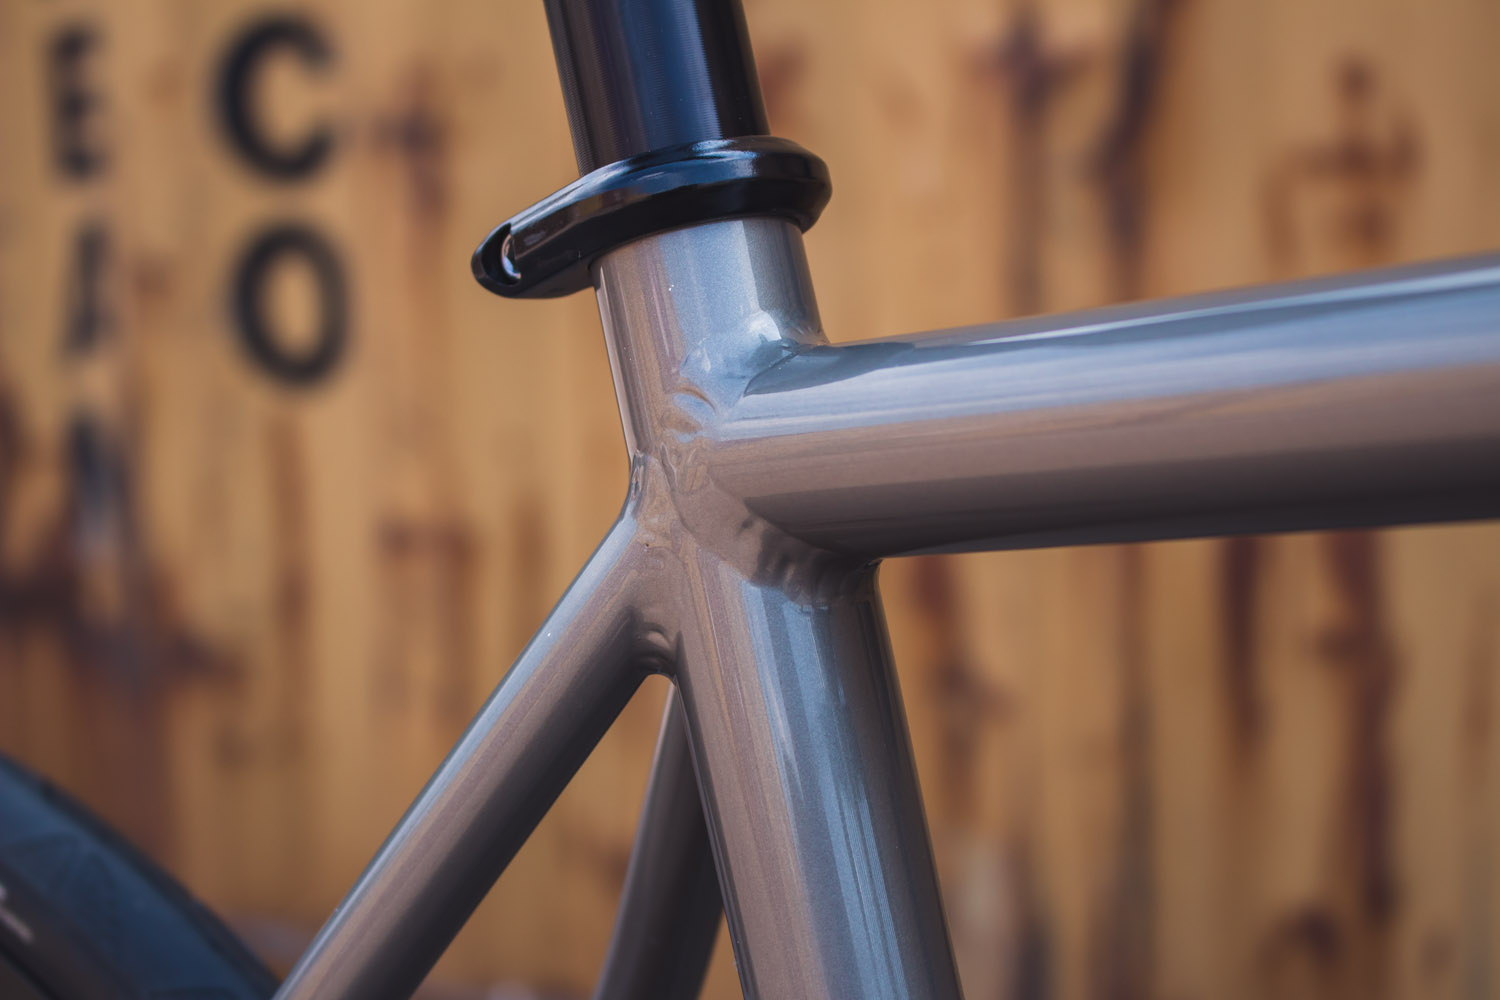 quirk_cycles_rich_mallet_road_06.jpg